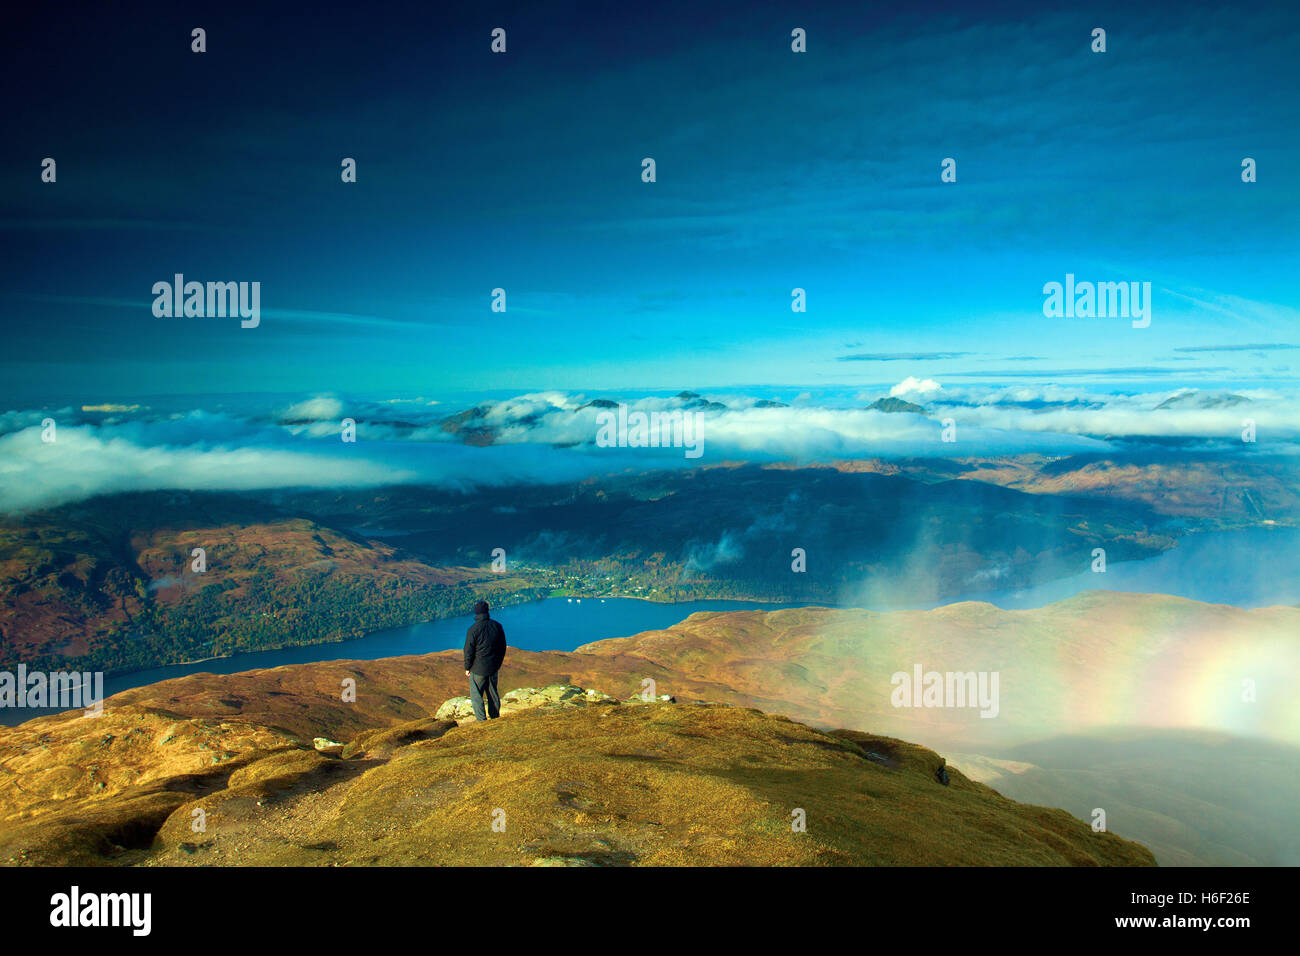 Loch Lomond and the Arrochar Alps from the Munro of Ben Lomond, Loch Lomond and the Trossachs National Park, Stirlingshire - Stock Image